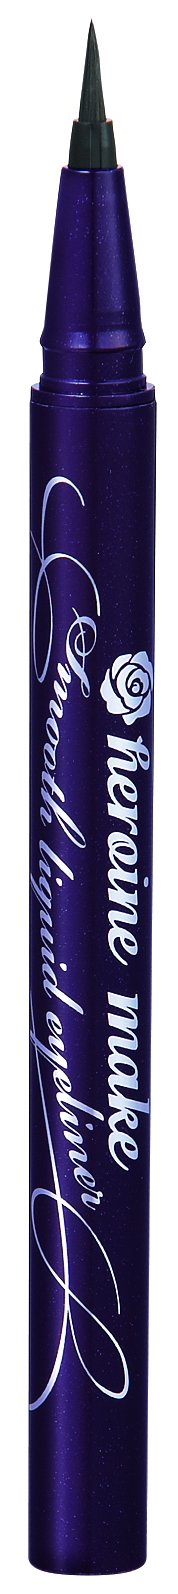 Kiss Me Heroine Make Smooth Waterproof Liquid Eyeliner, Black, 1 Ounce by Kiss Me (Image #7)